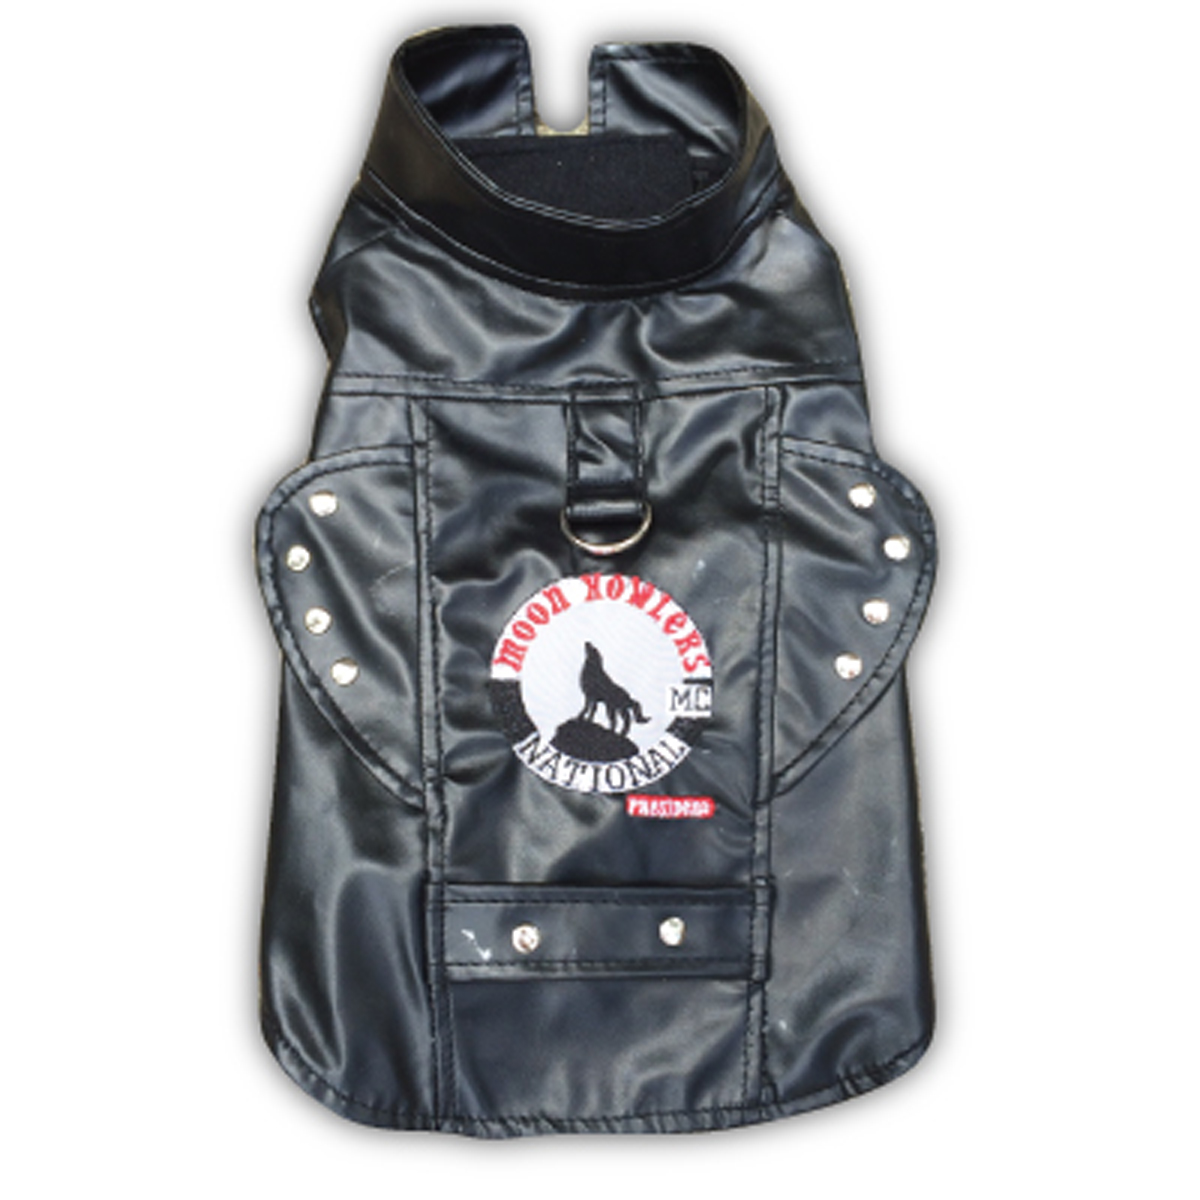 Biker Vest Dog Harness by Doggles - Moon Howlers